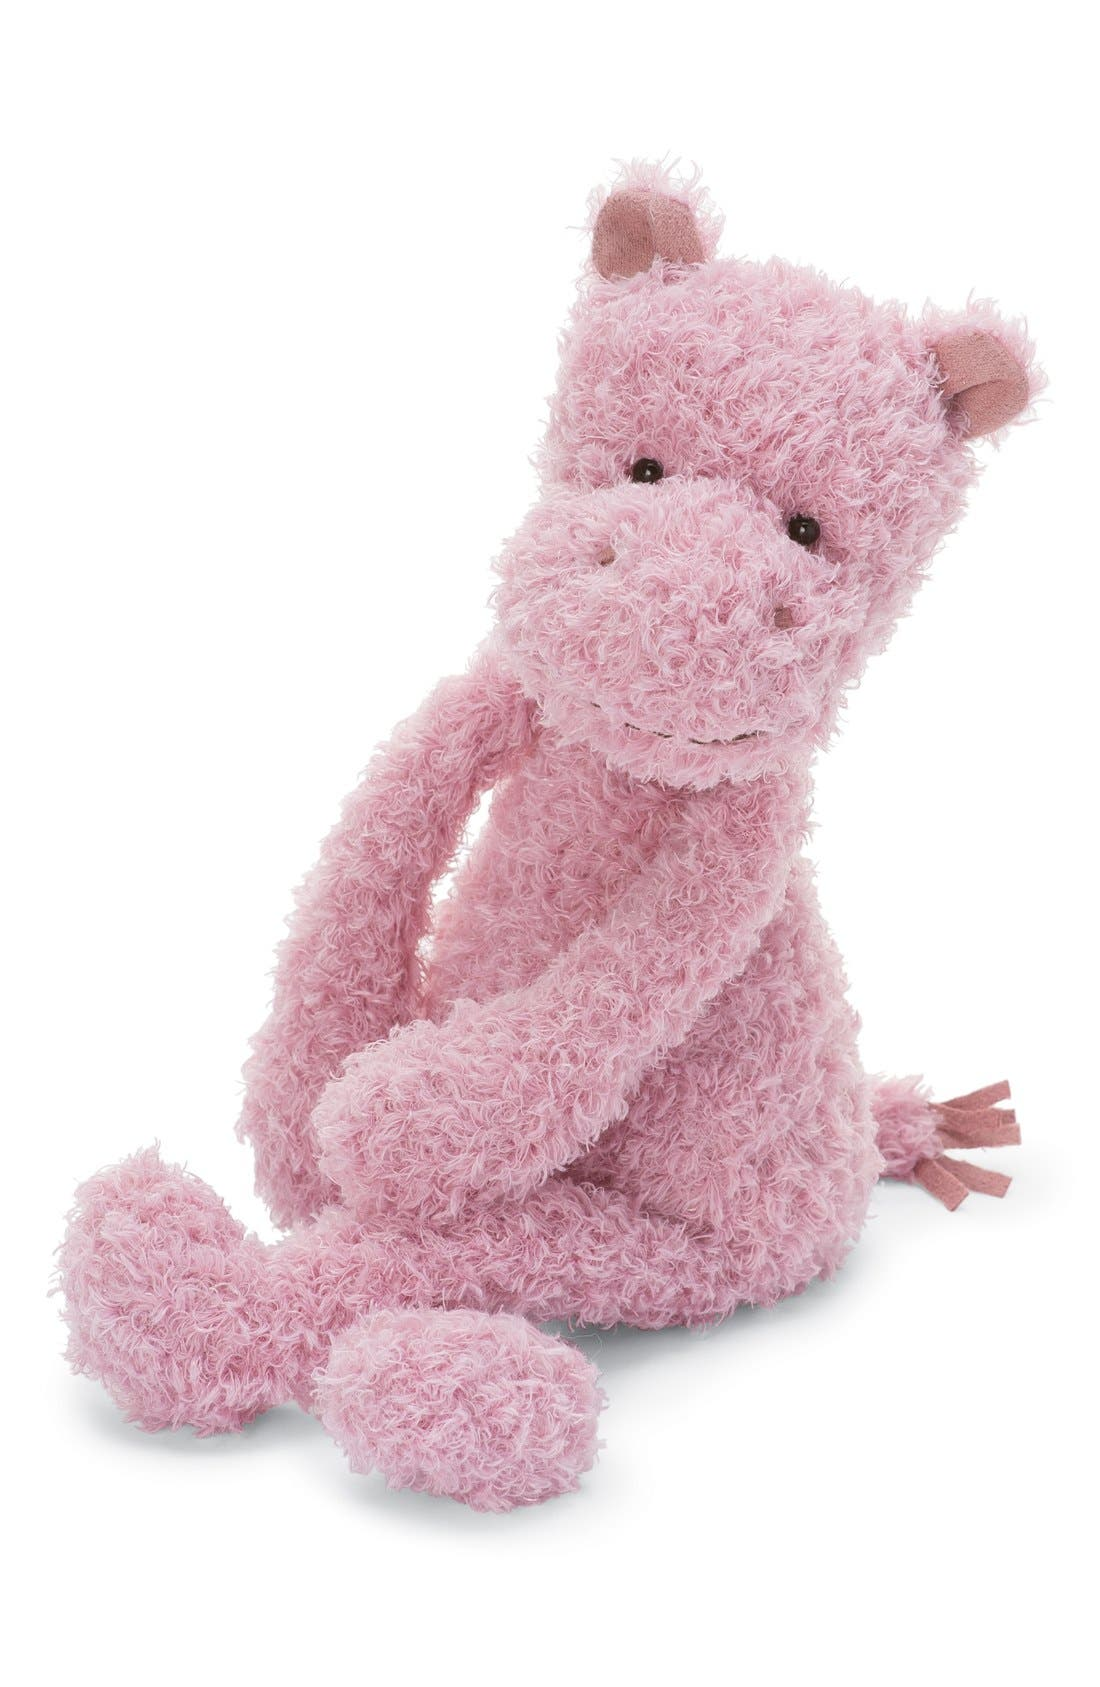 'Wild Thing Hippo' Stuffed Animal,                         Main,                         color, Pink